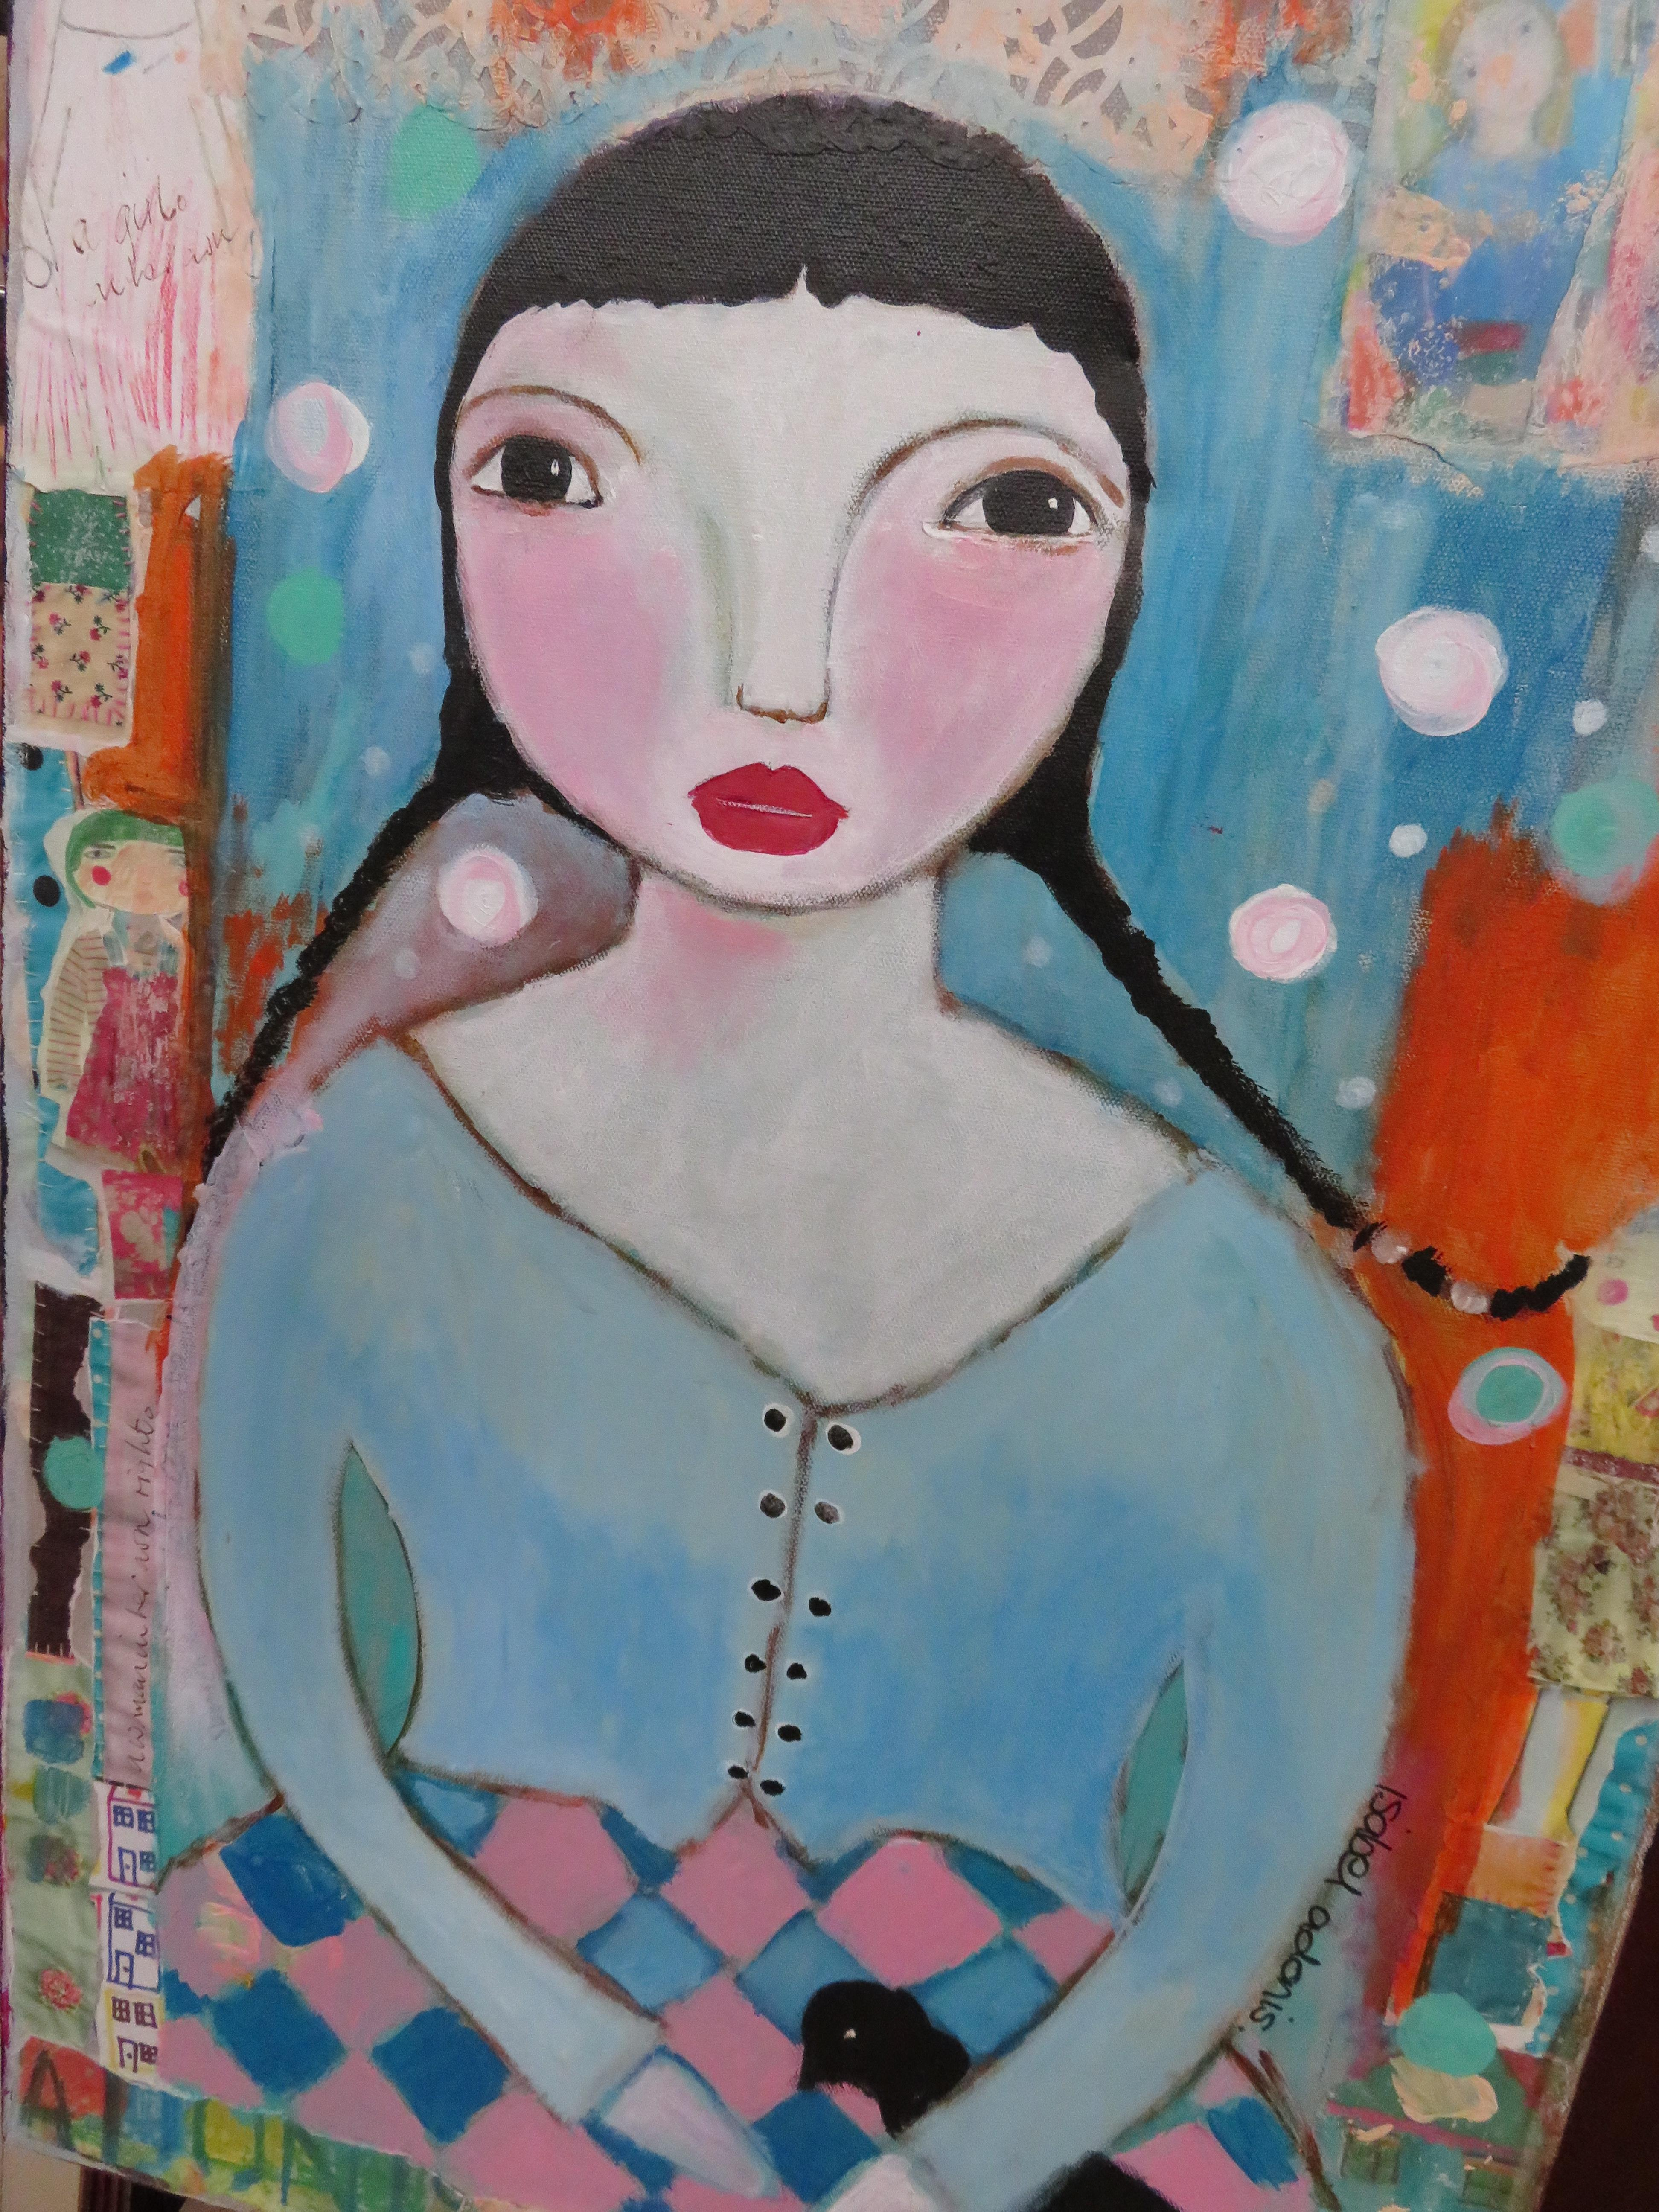 Oil on canvas mixed media painting by Isabel Adoni